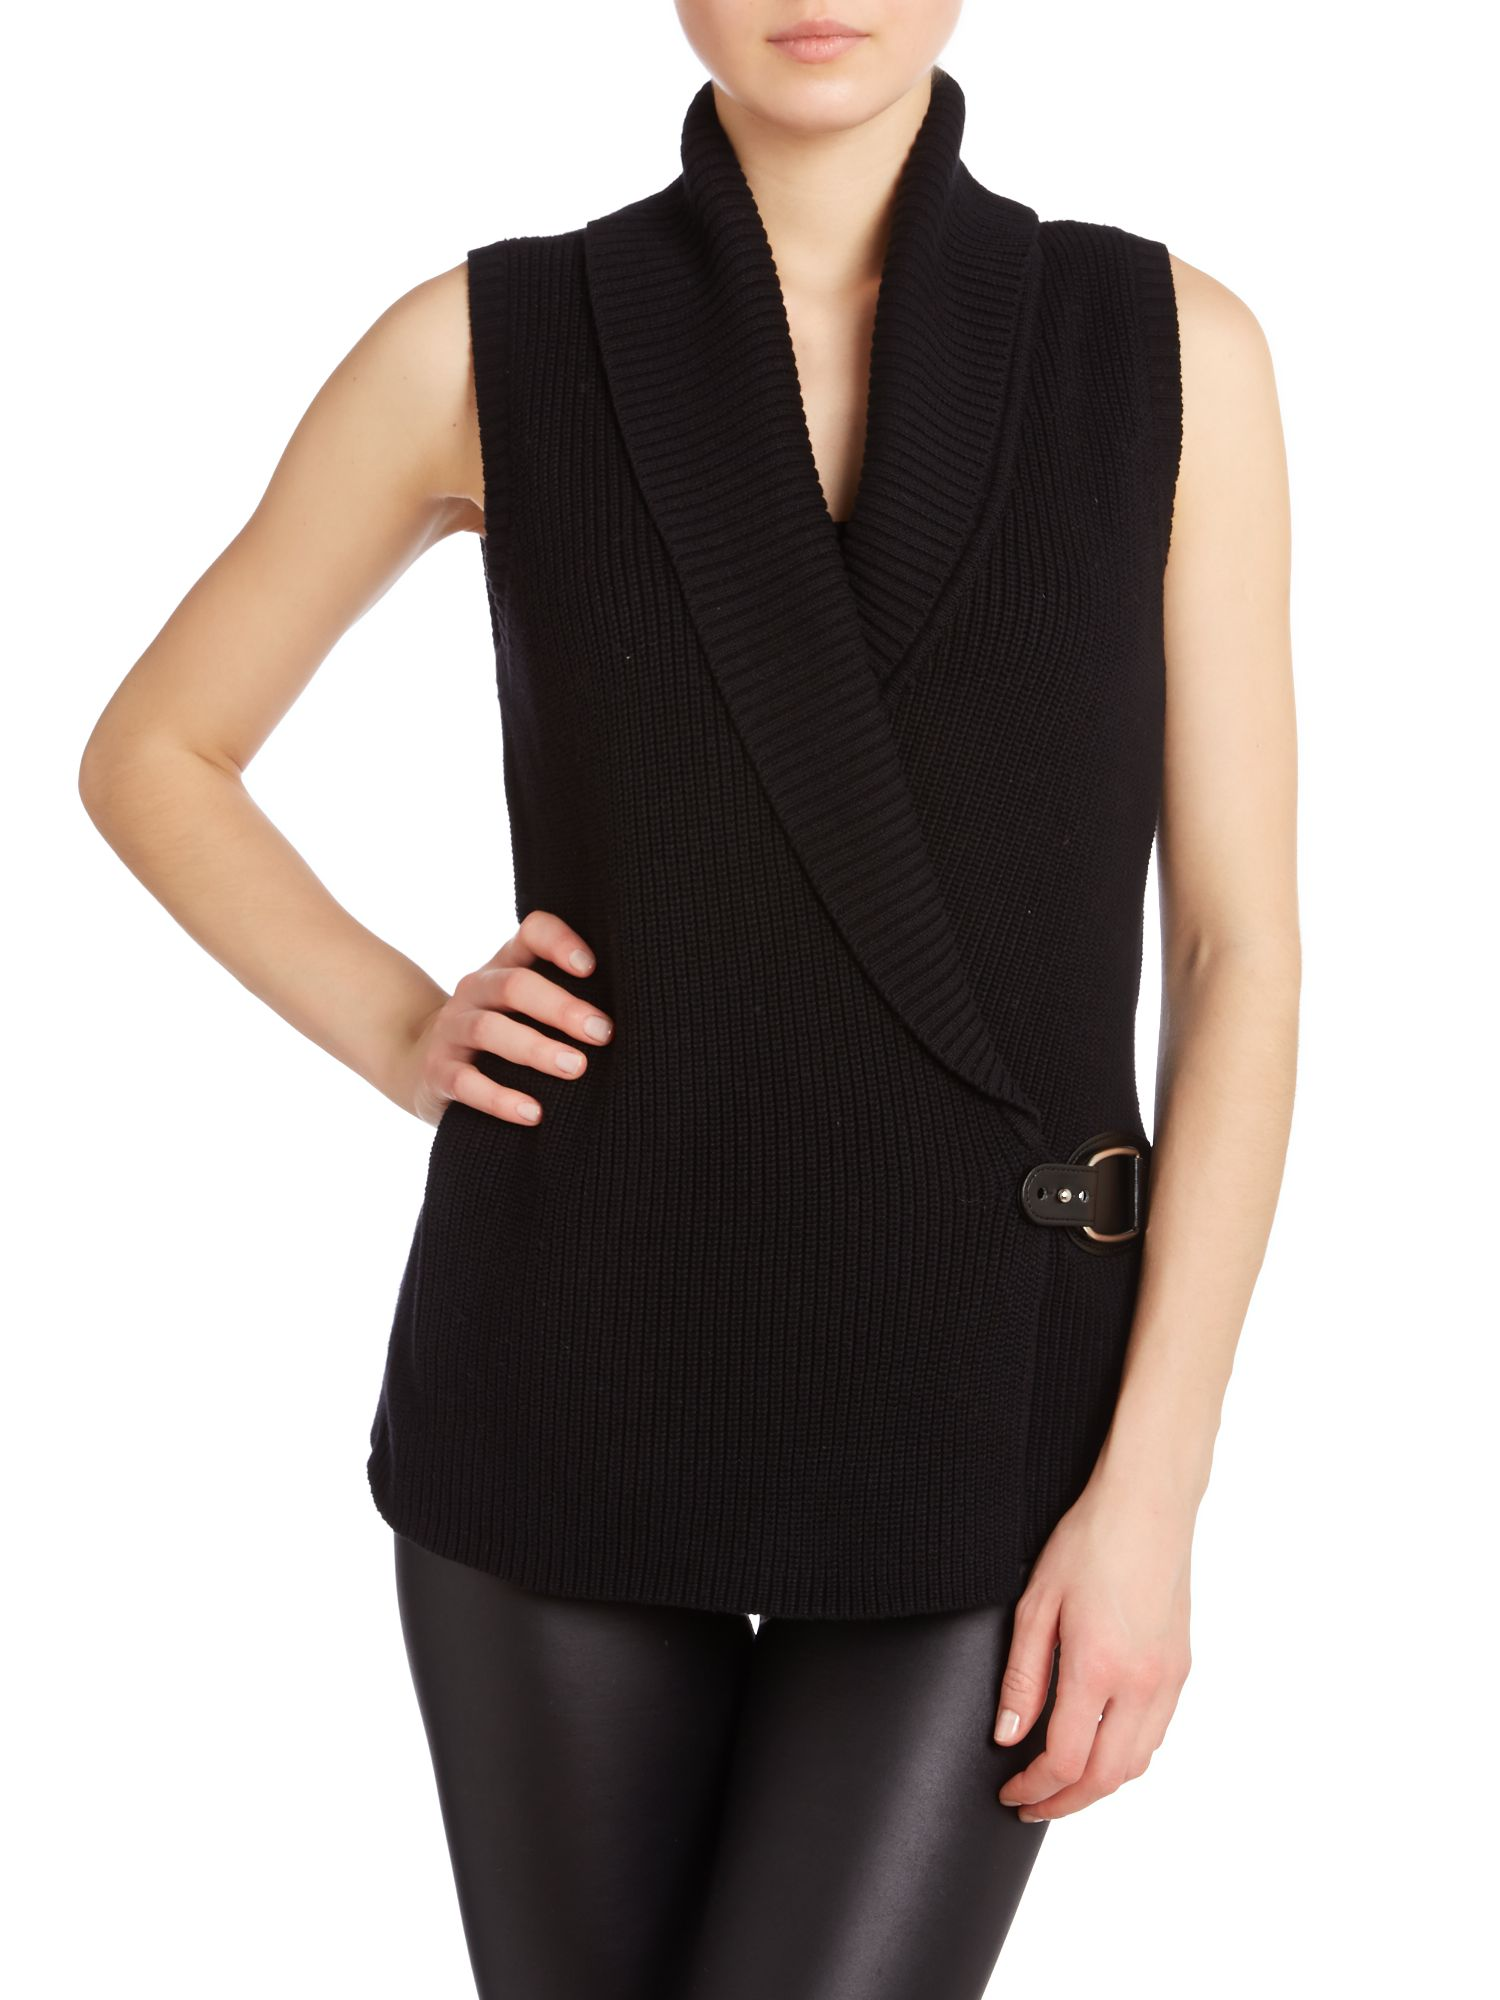 Sleeveless knitted wrap top with buckle detail